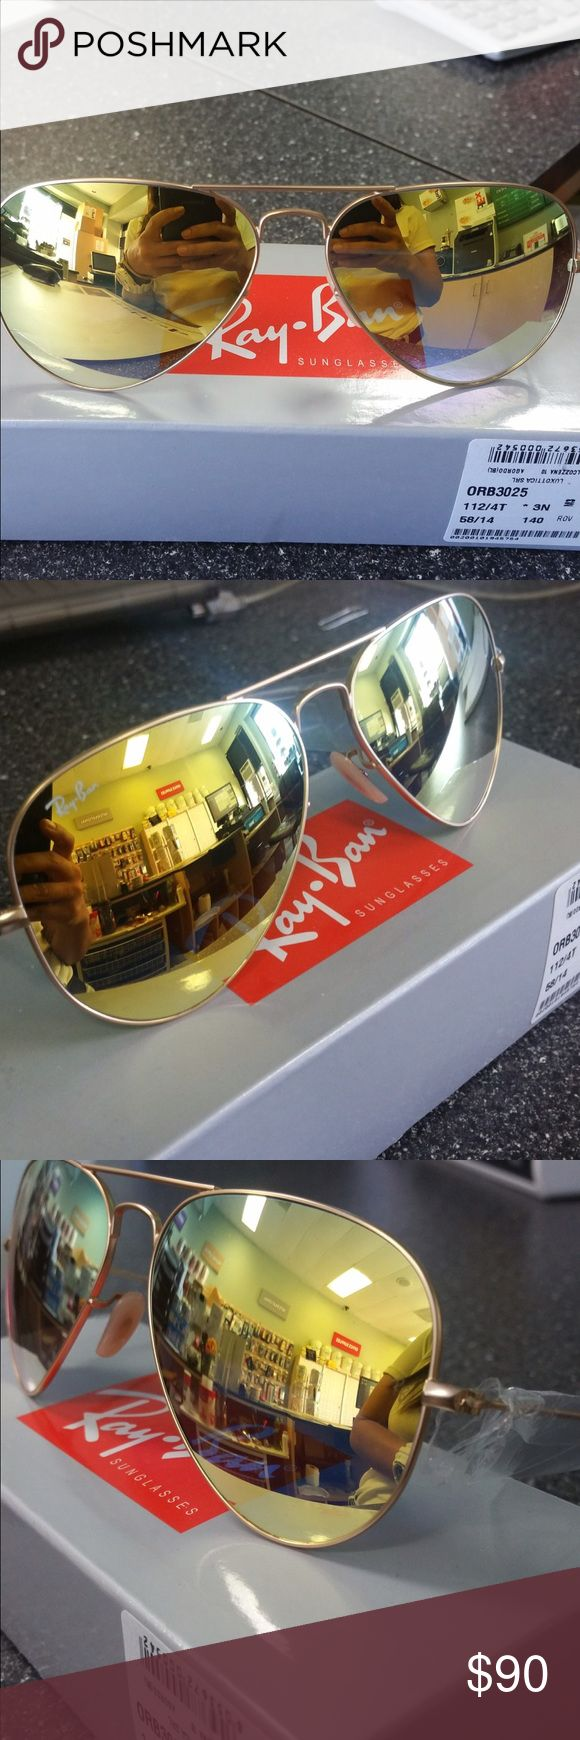 Ray-Ban 3025 gold aviator Stylish gold lenses aviator with gold frame , complete package Ray-Ban Accessories Sunglasses